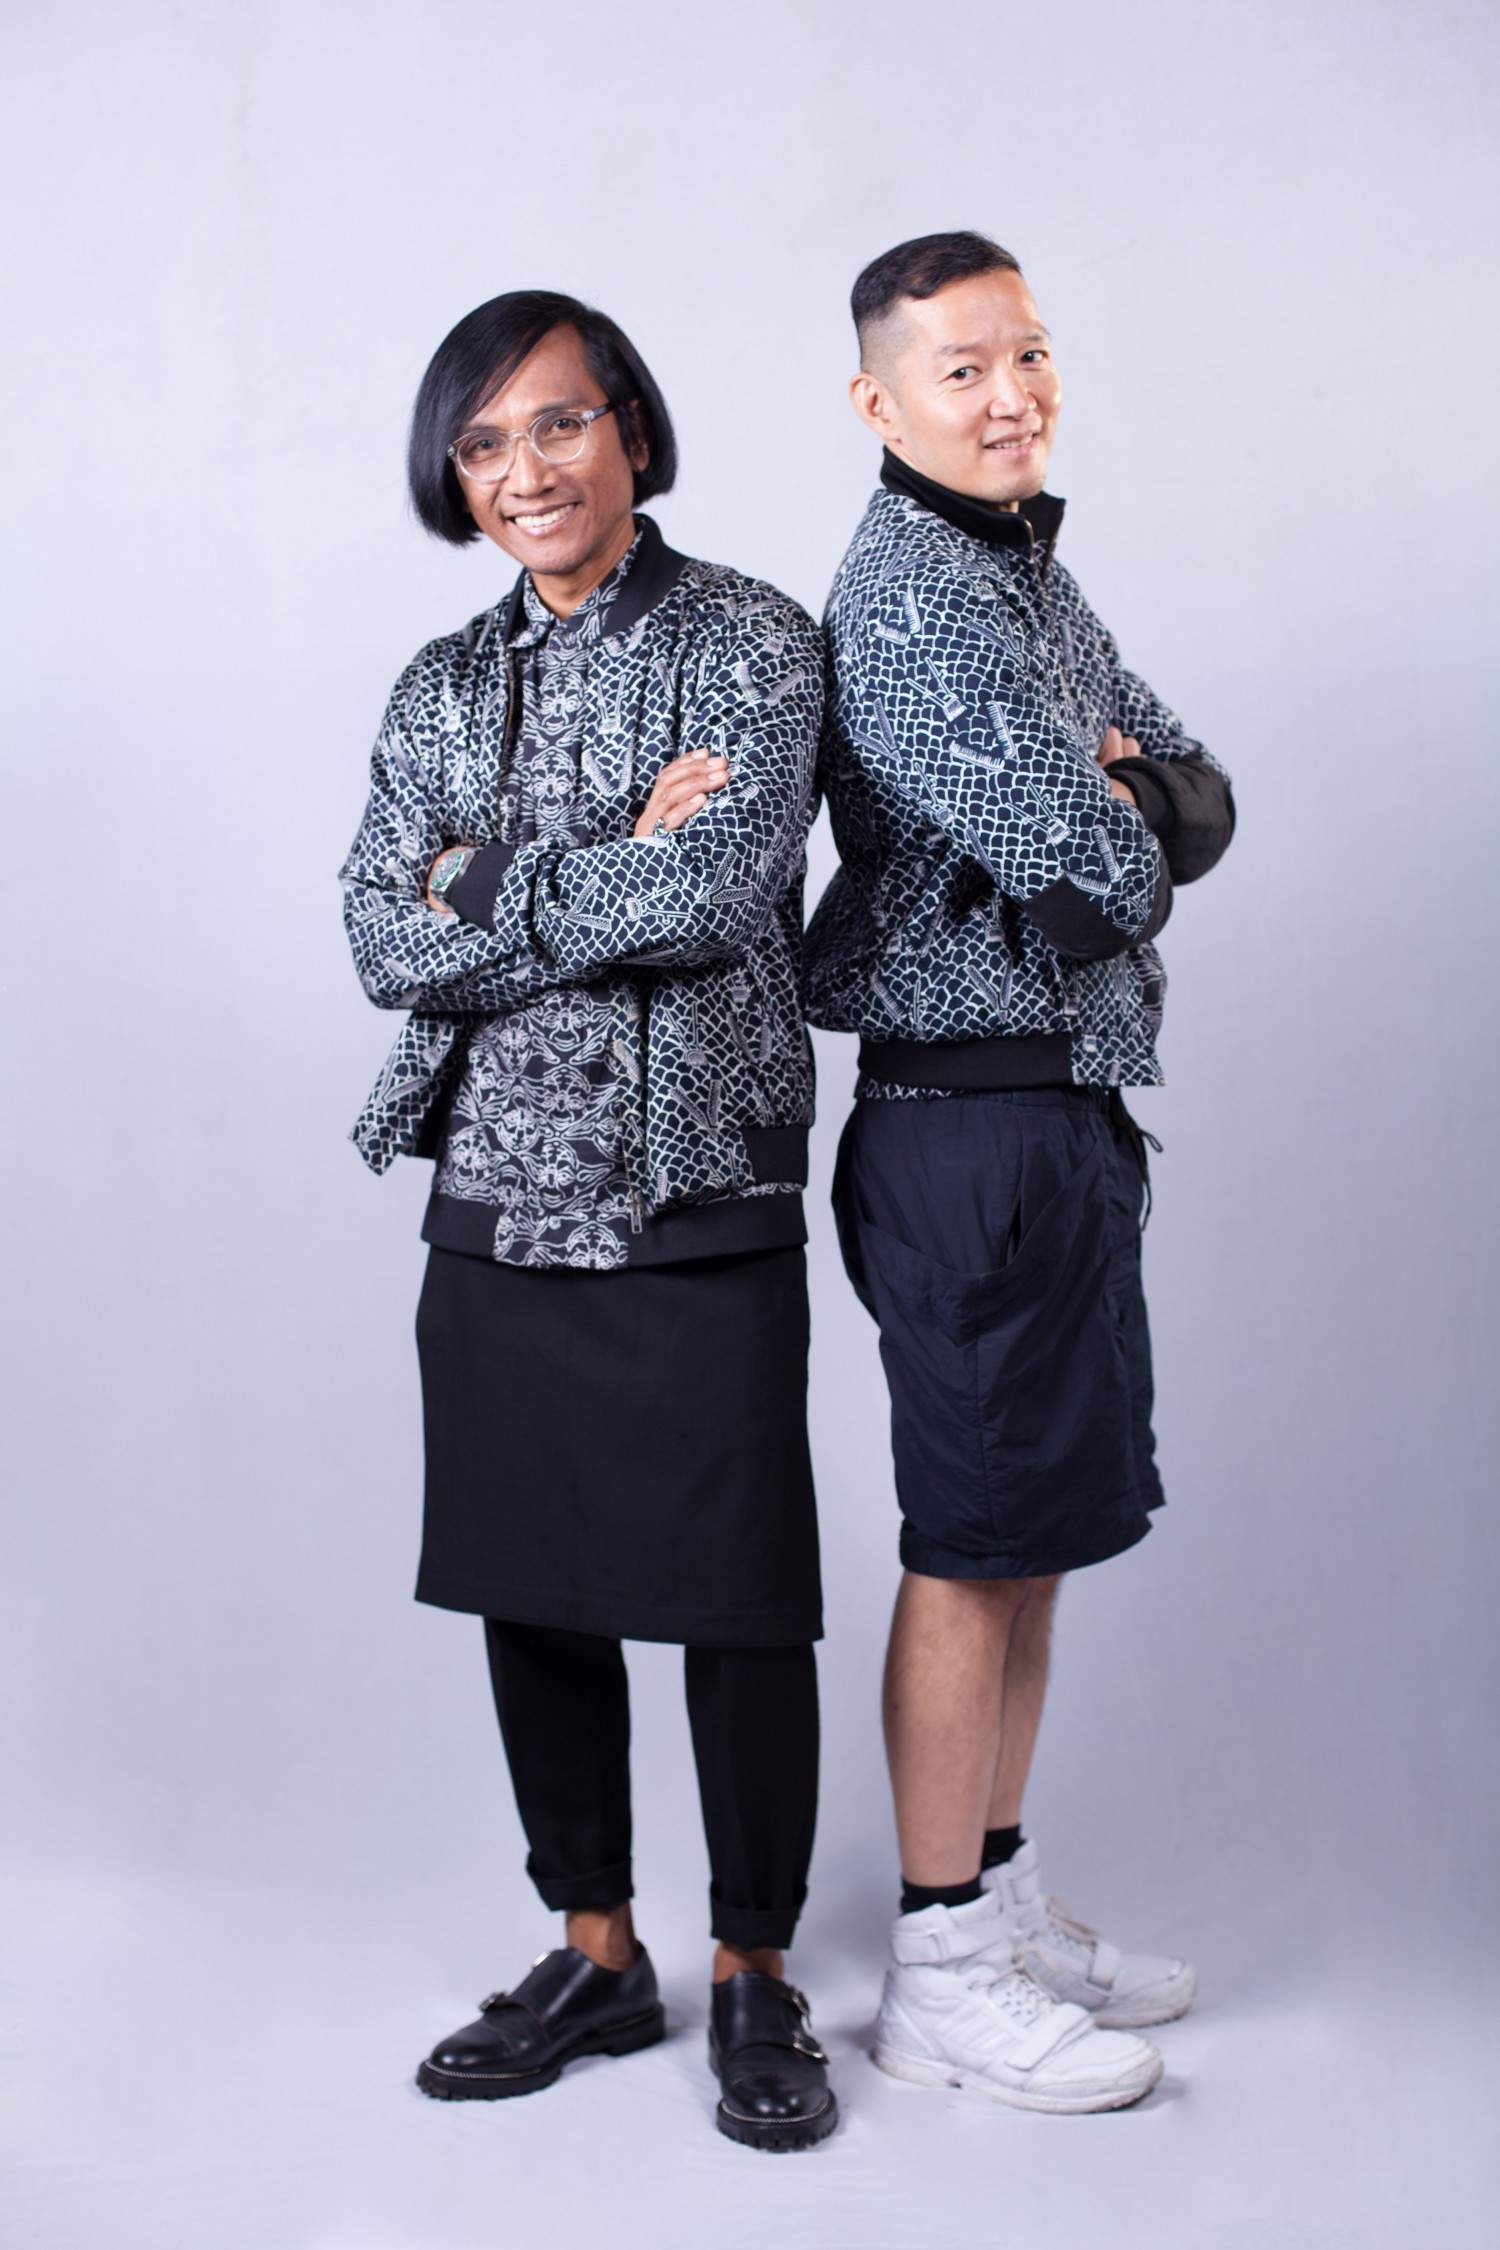 Founders of Populo, Joe Lim & Bai Soemarlono. Photo by Andy Maulana @andymaagz